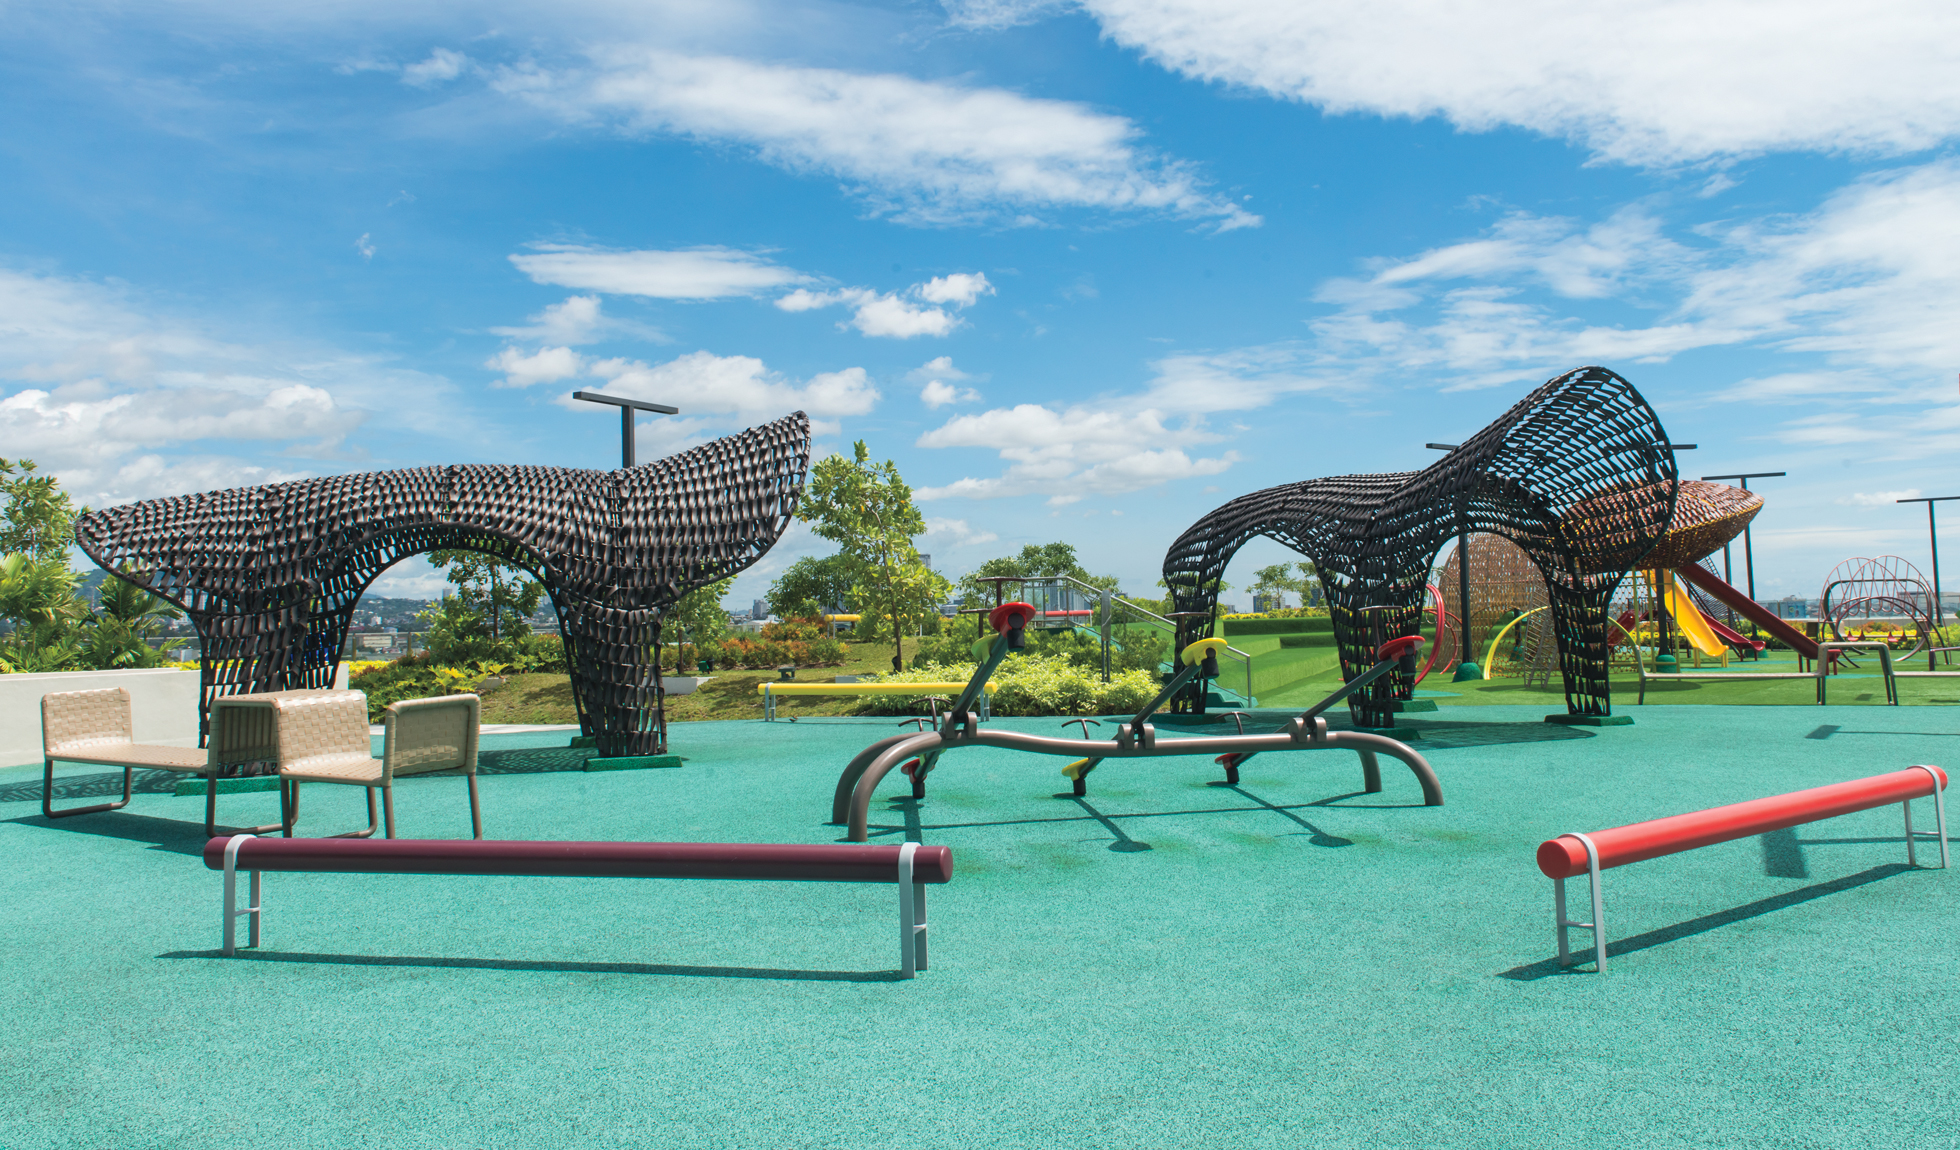 Fantastical Rooftop Playground By Kenneth Cobonpue